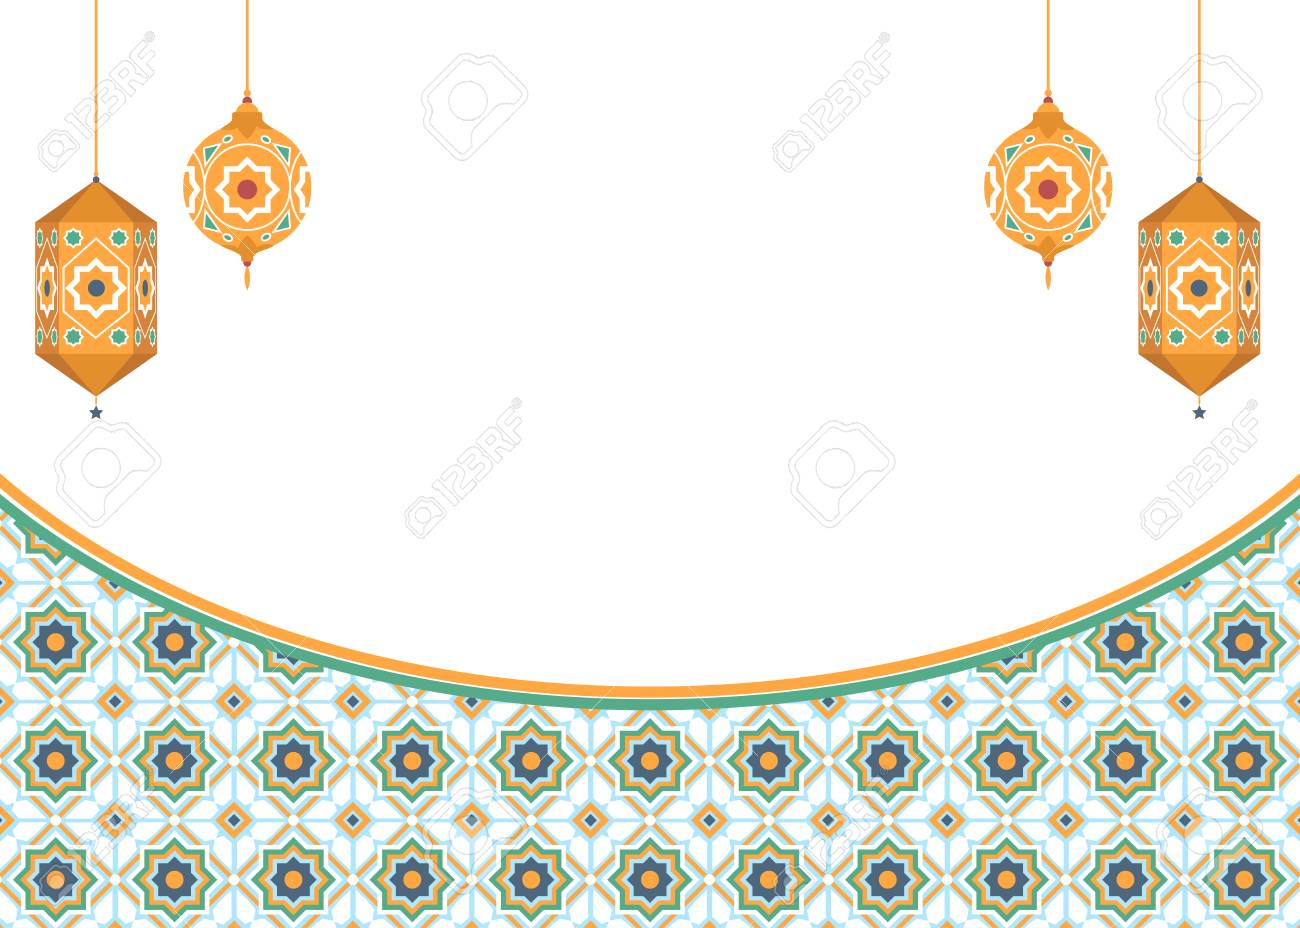 islamic art background design